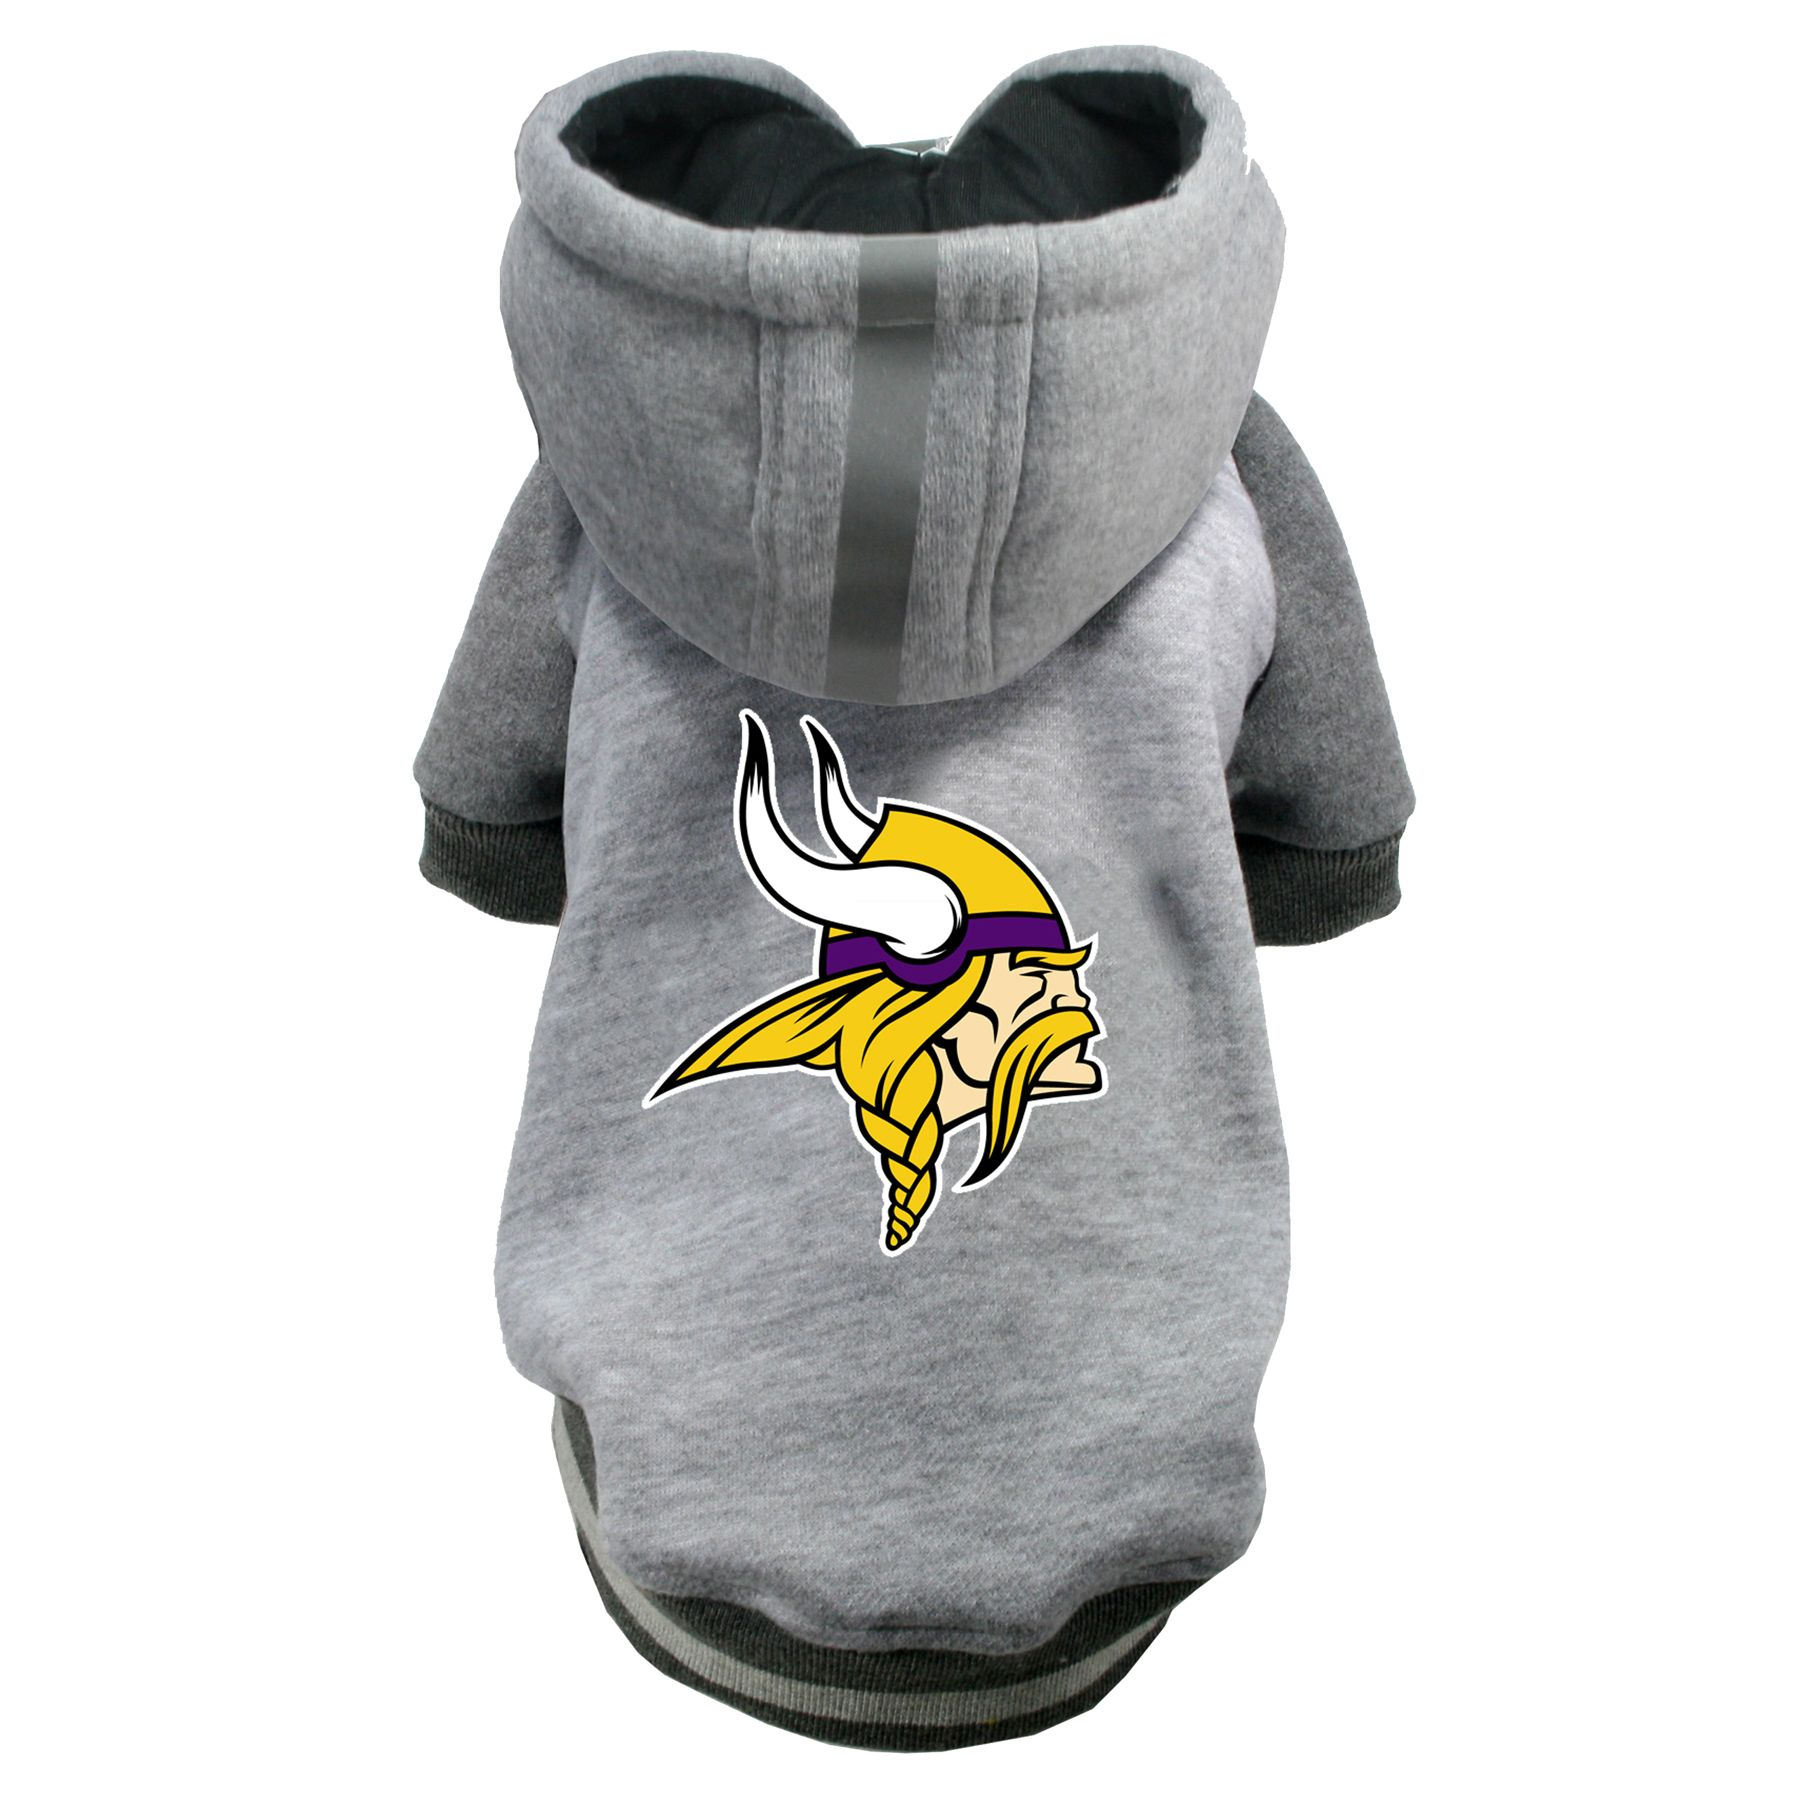 Minnesota Vikings NFL Hoodie size: 2X Large, Hip Doggie photo